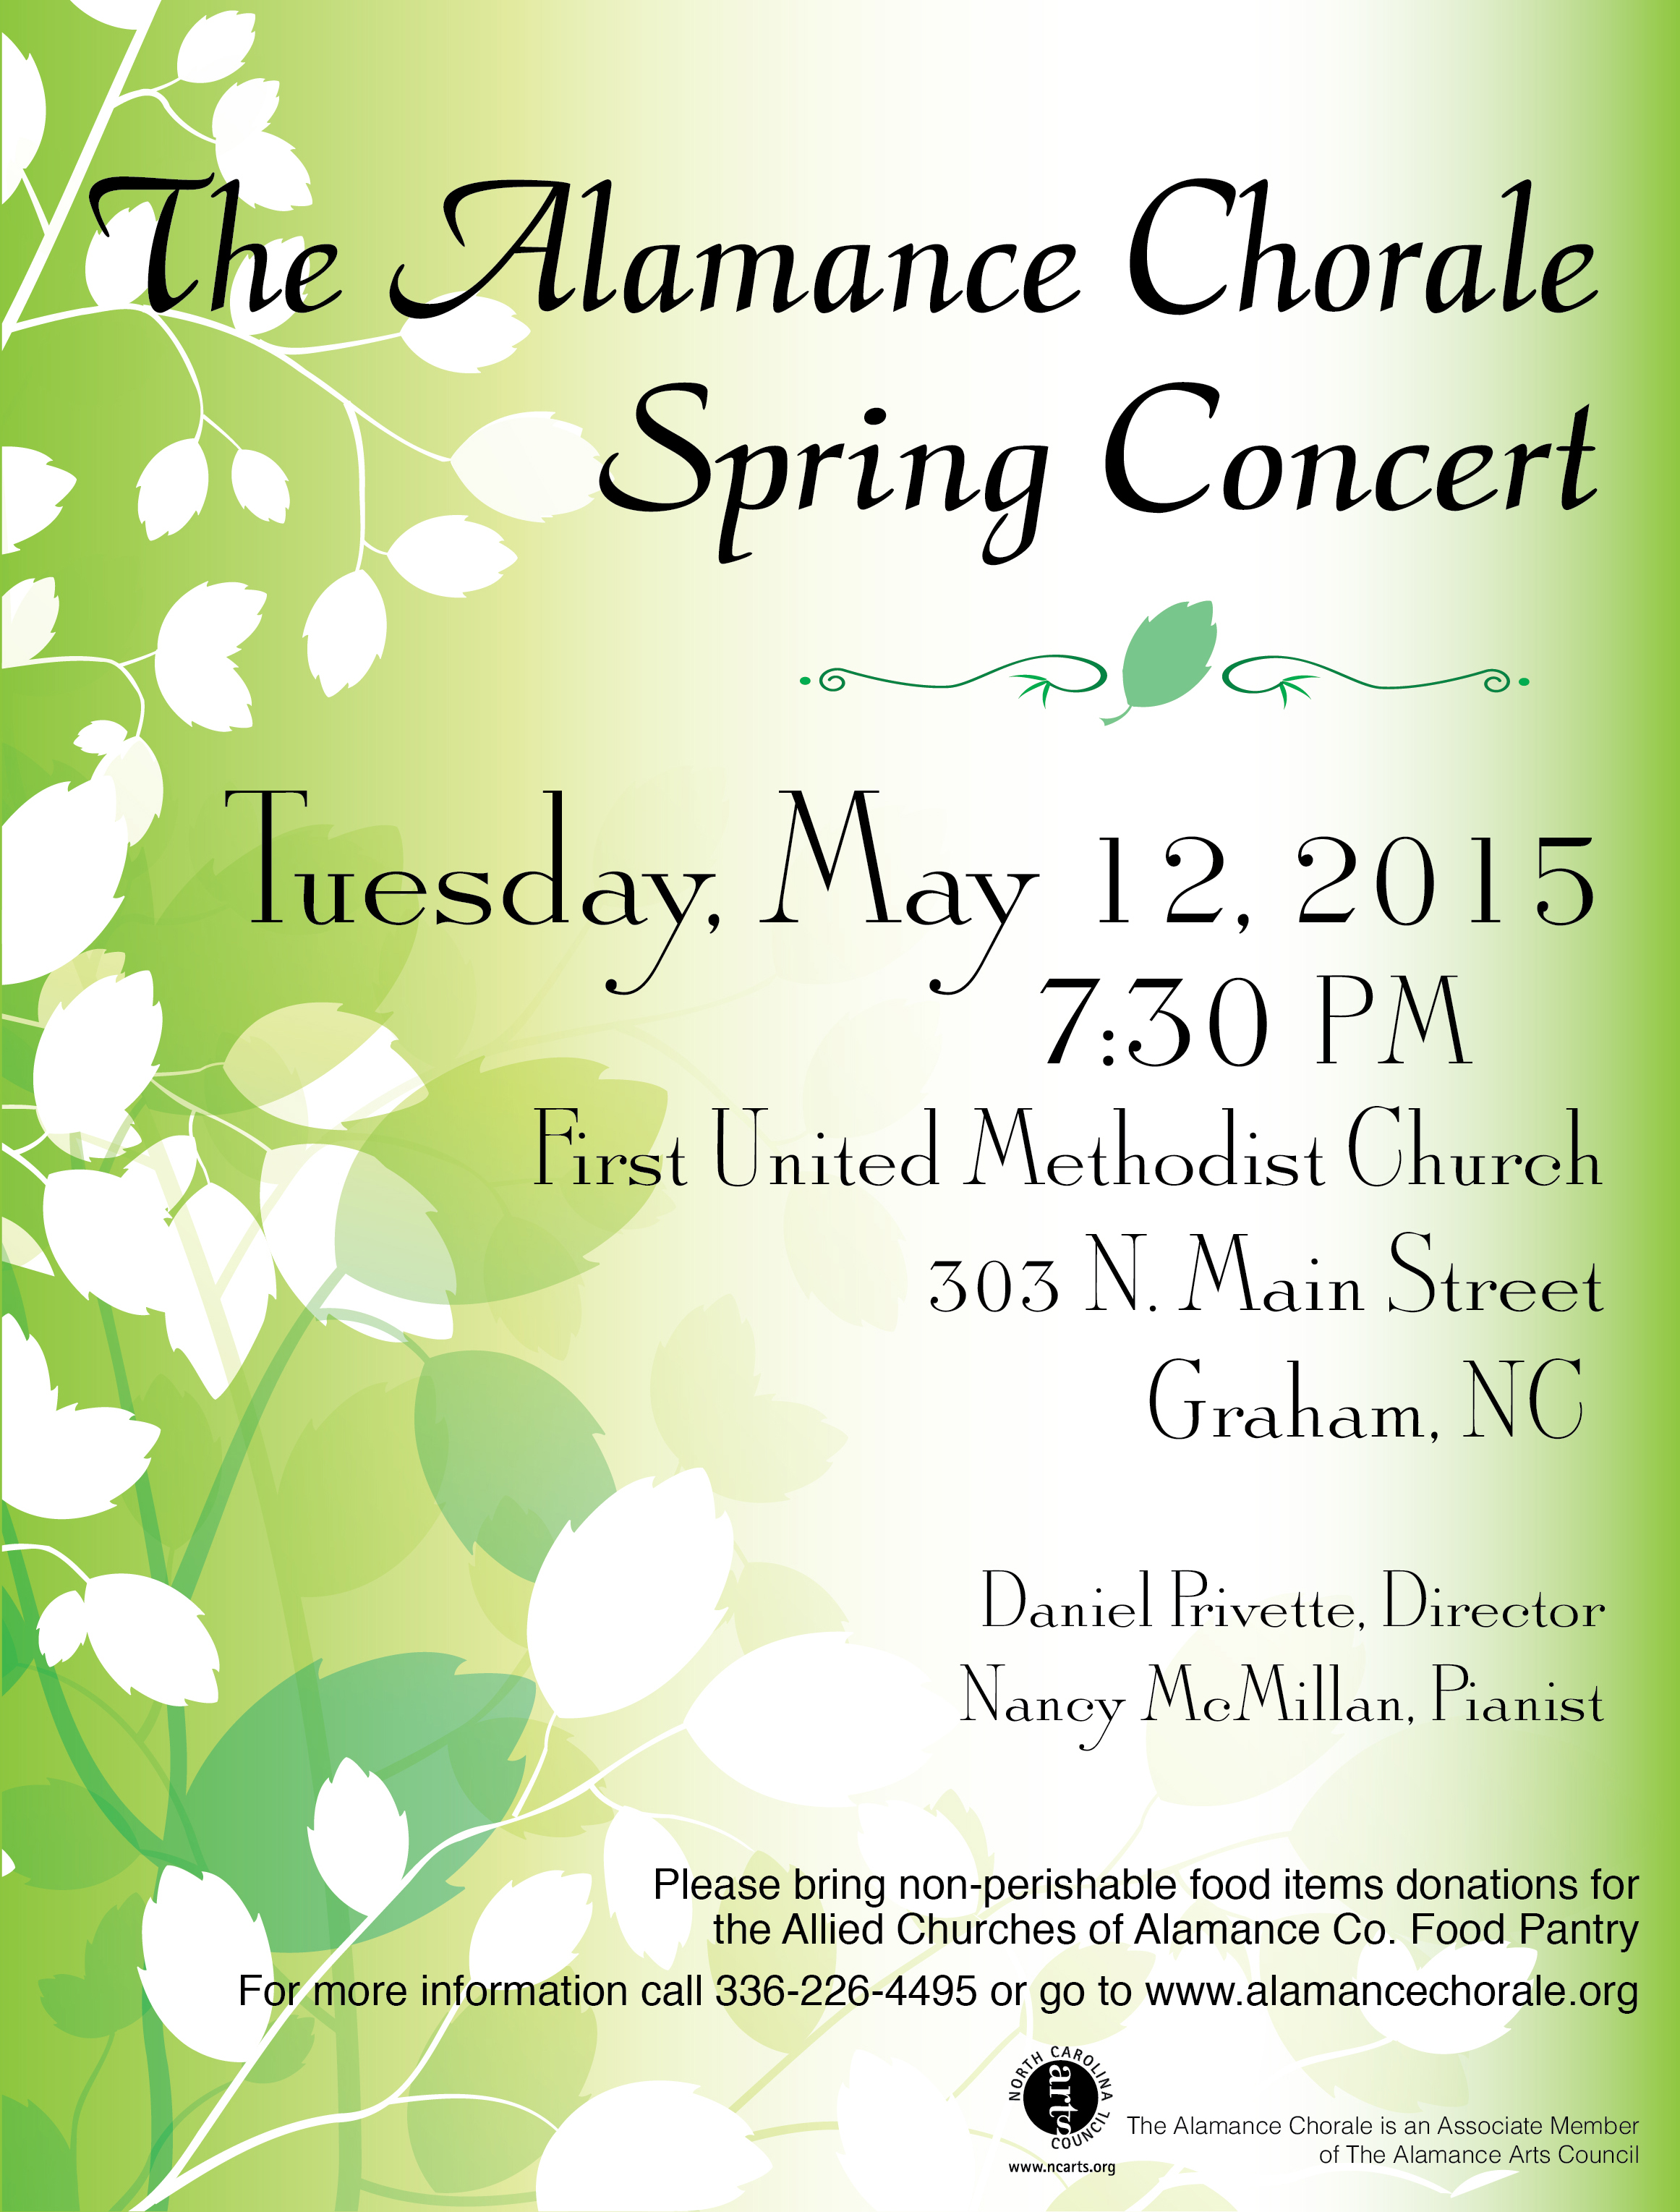 Alamance Chorale May 12, 2015 Spring Concert Flyer Graphic